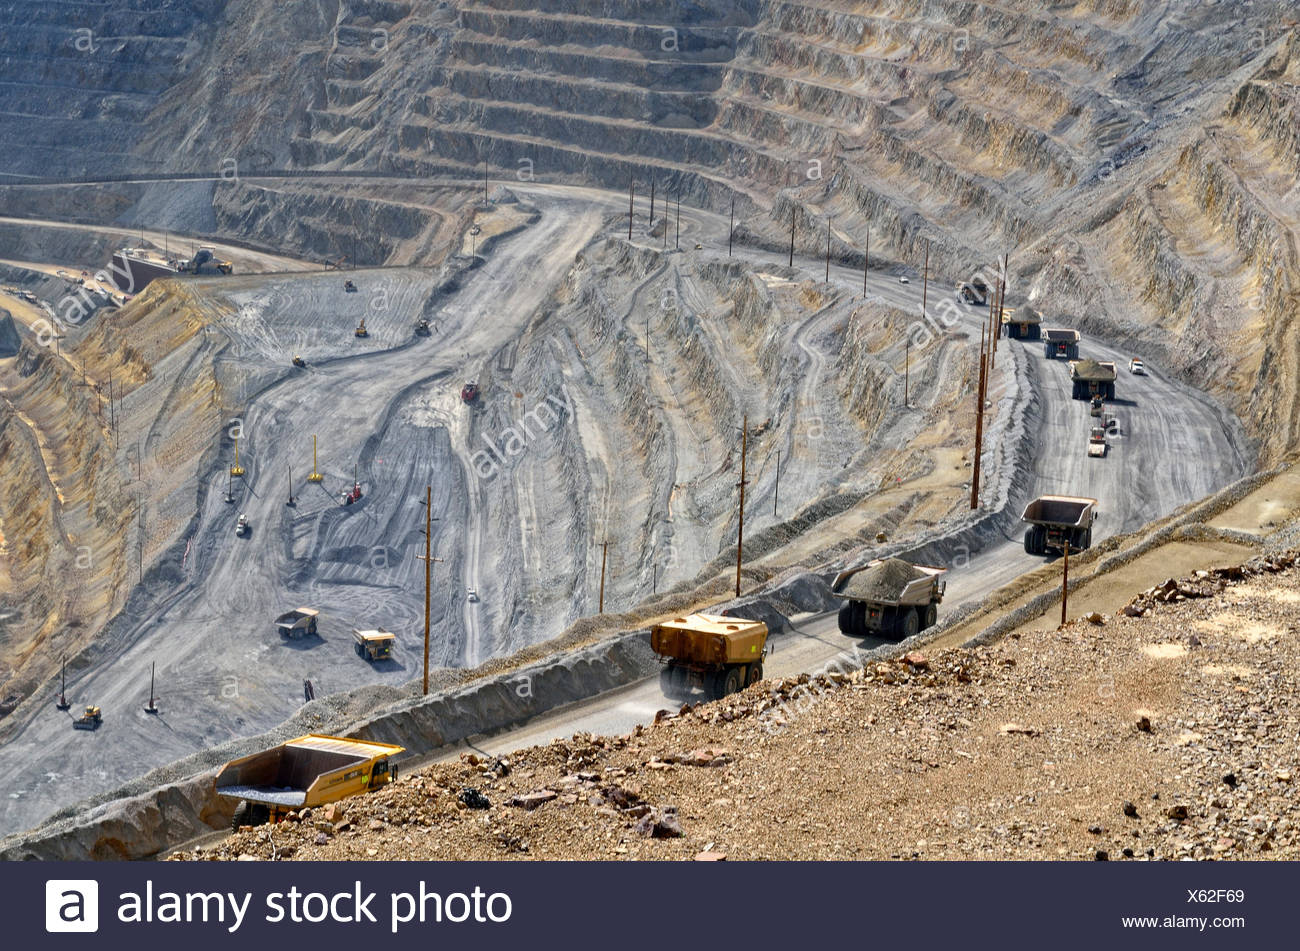 Haul trucks, heavy-duty trucks traveling in the Kennecott Utah Copper's Bingham Canyon Mine, Copperton, Utah, USA - Stock Image